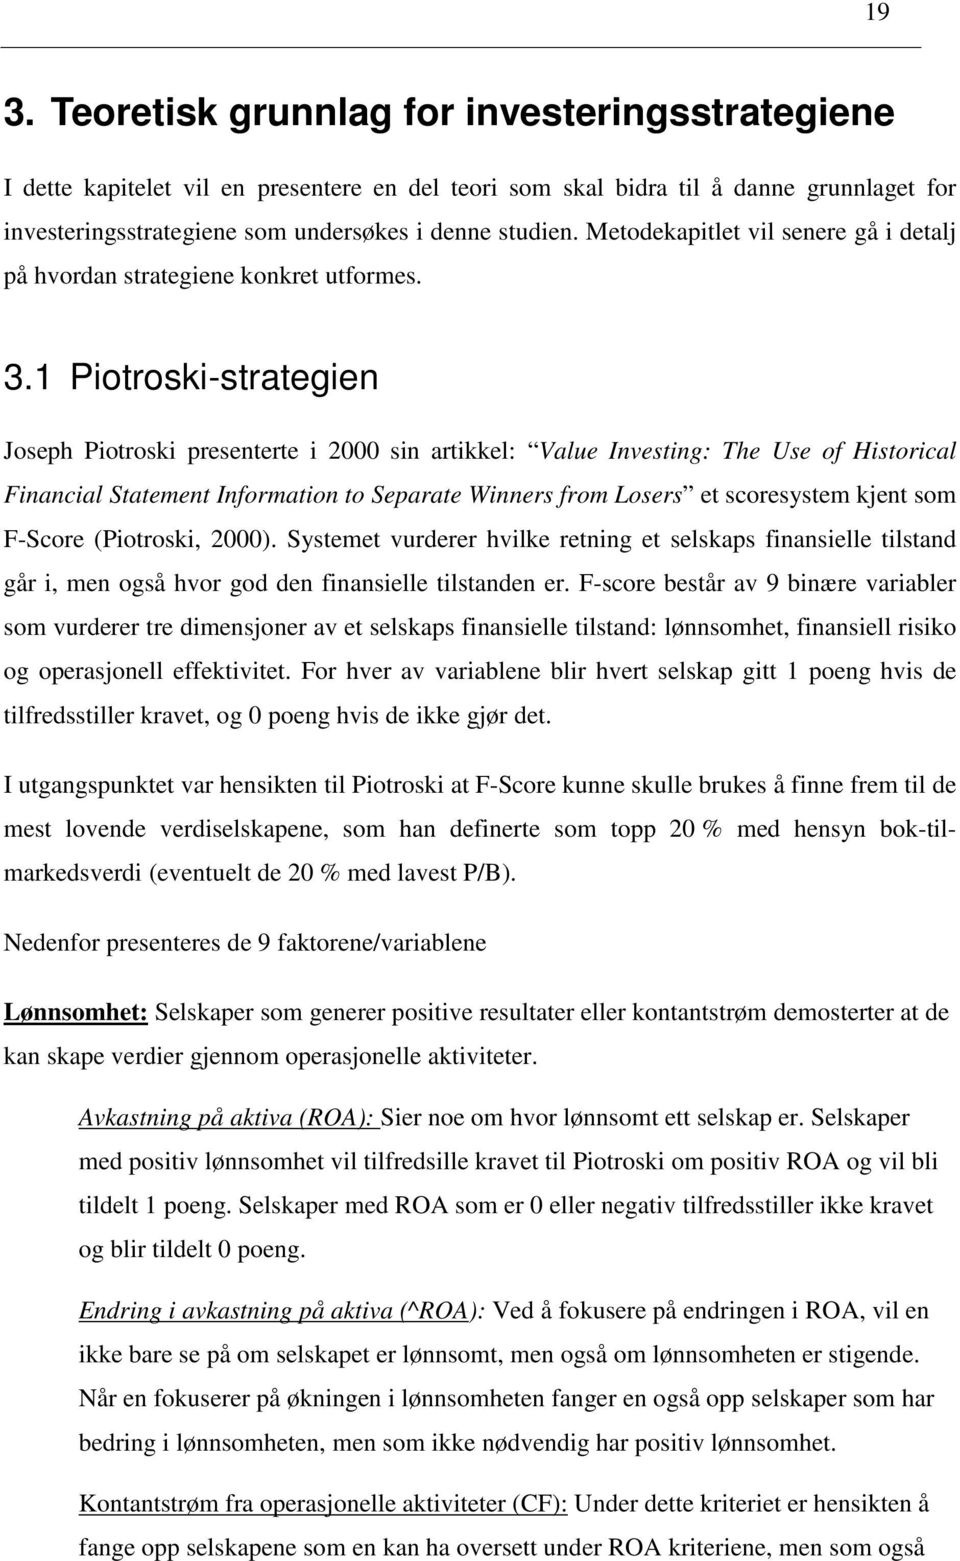 1 Piotroski-strategien Joseph Piotroski presenterte i 2000 sin artikkel: Value Investing: The Use of Historical Financial Statement Information to Separate Winners from Losers et scoresystem kjent